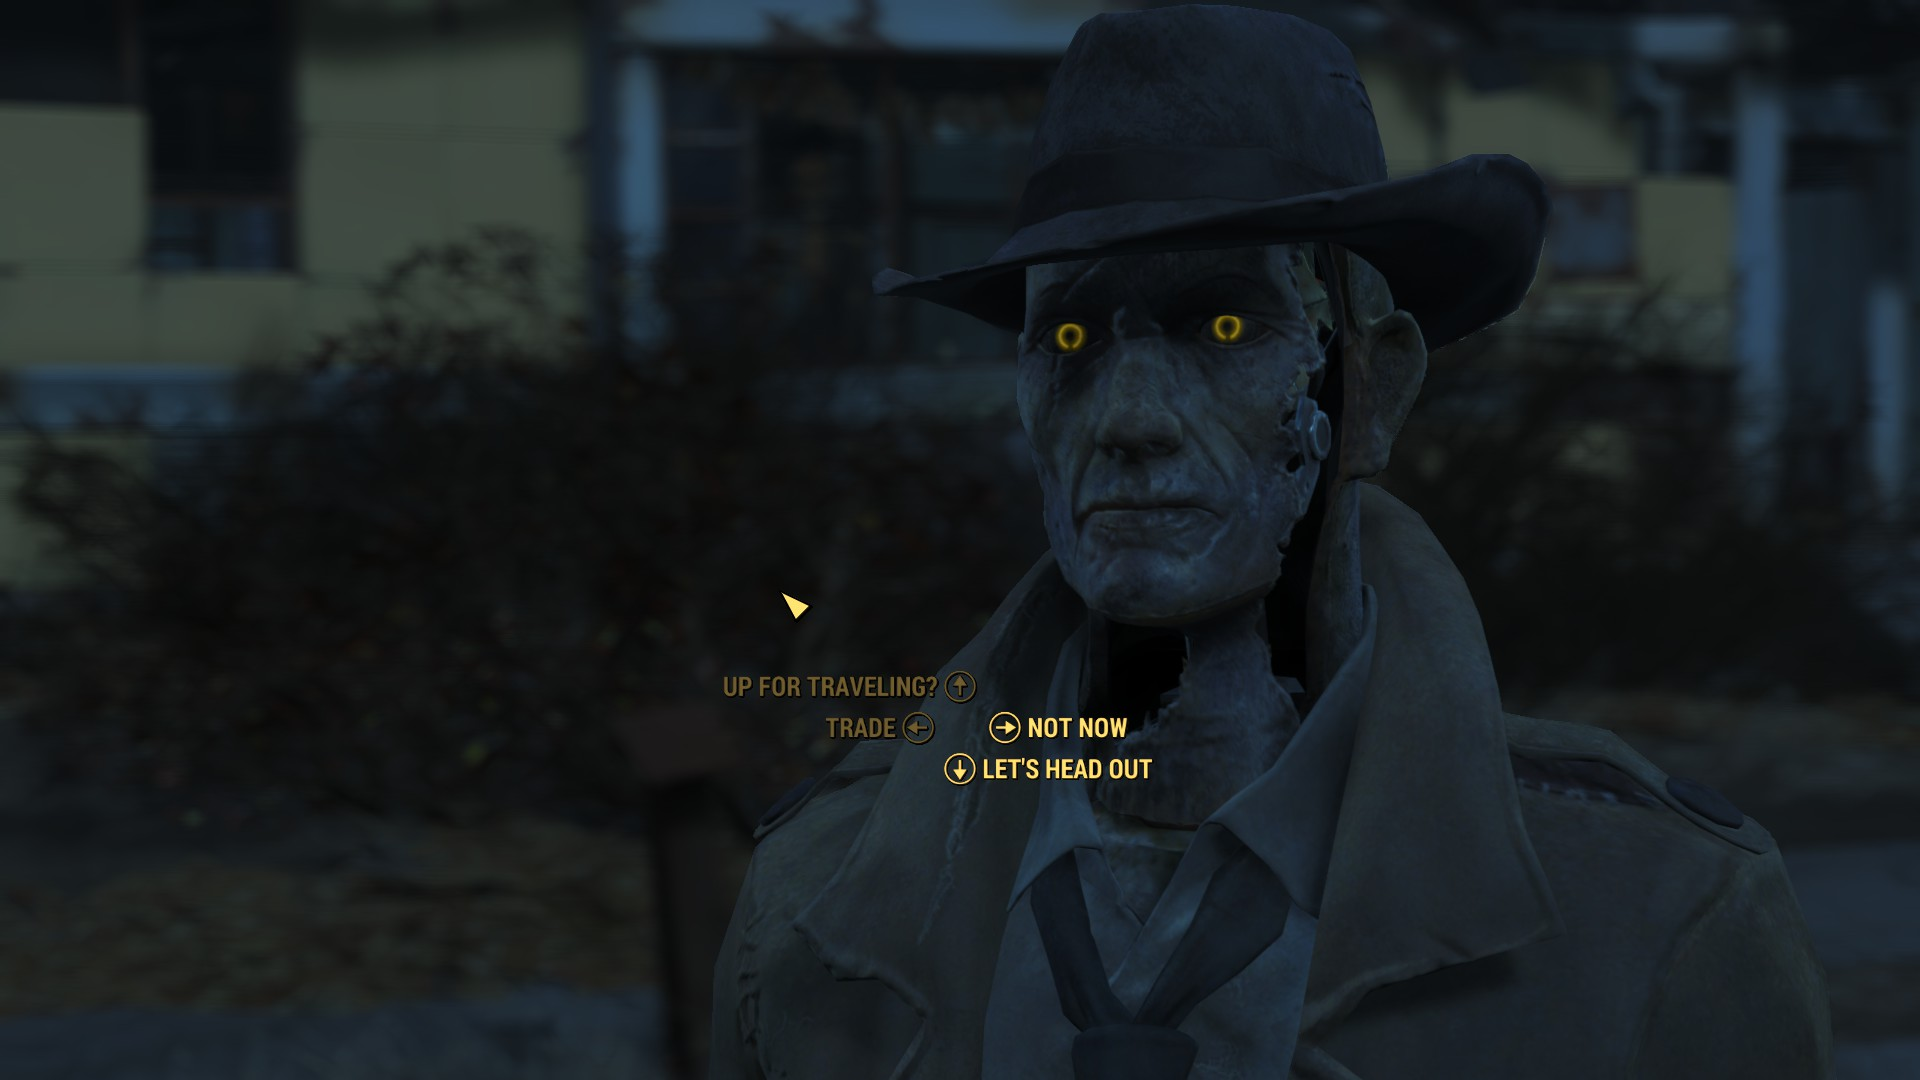 Cute Converse Wallpaper Fallout 4 Guide How To Recruit All 13 Companions